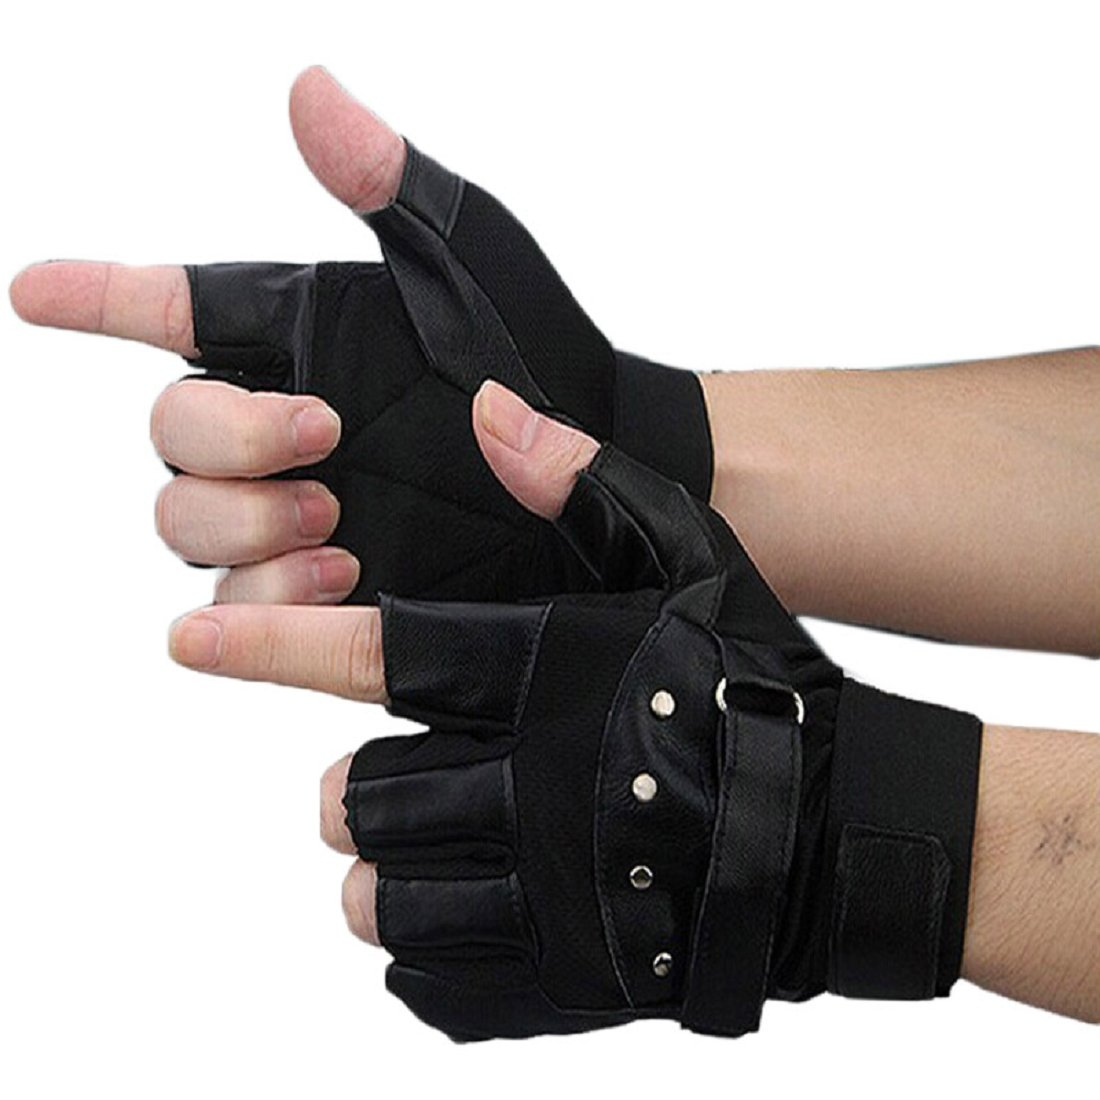 Shensee Boy Male Soft PU Leather Driving Motorcycle Biker Fingerless Warm Gloves by Shensee (Image #1)